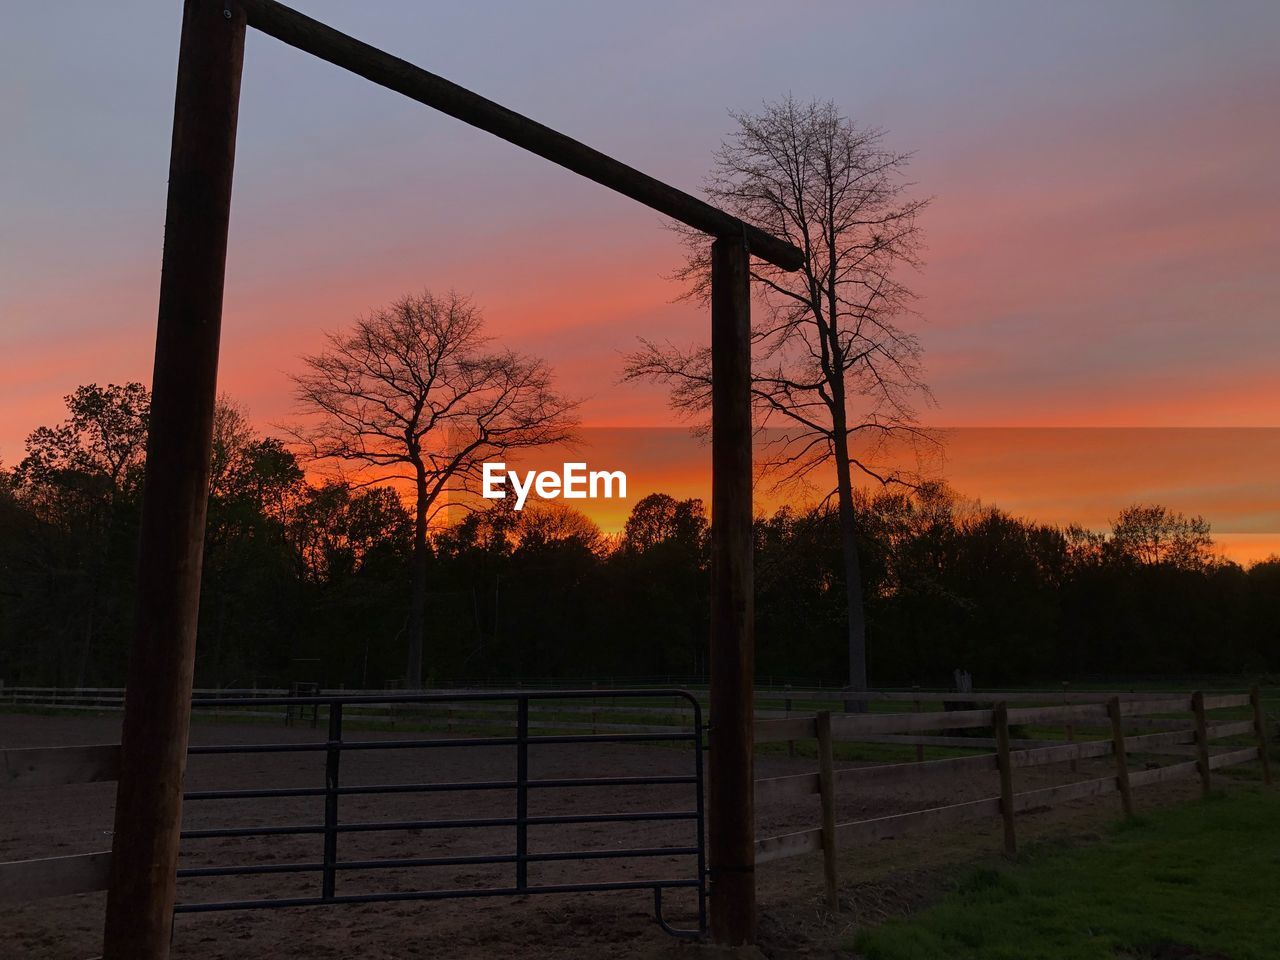 sunset, sky, barrier, fence, boundary, tree, orange color, field, no people, plant, beauty in nature, nature, scenics - nature, security, tranquility, protection, safety, land, tranquil scene, landscape, outdoors